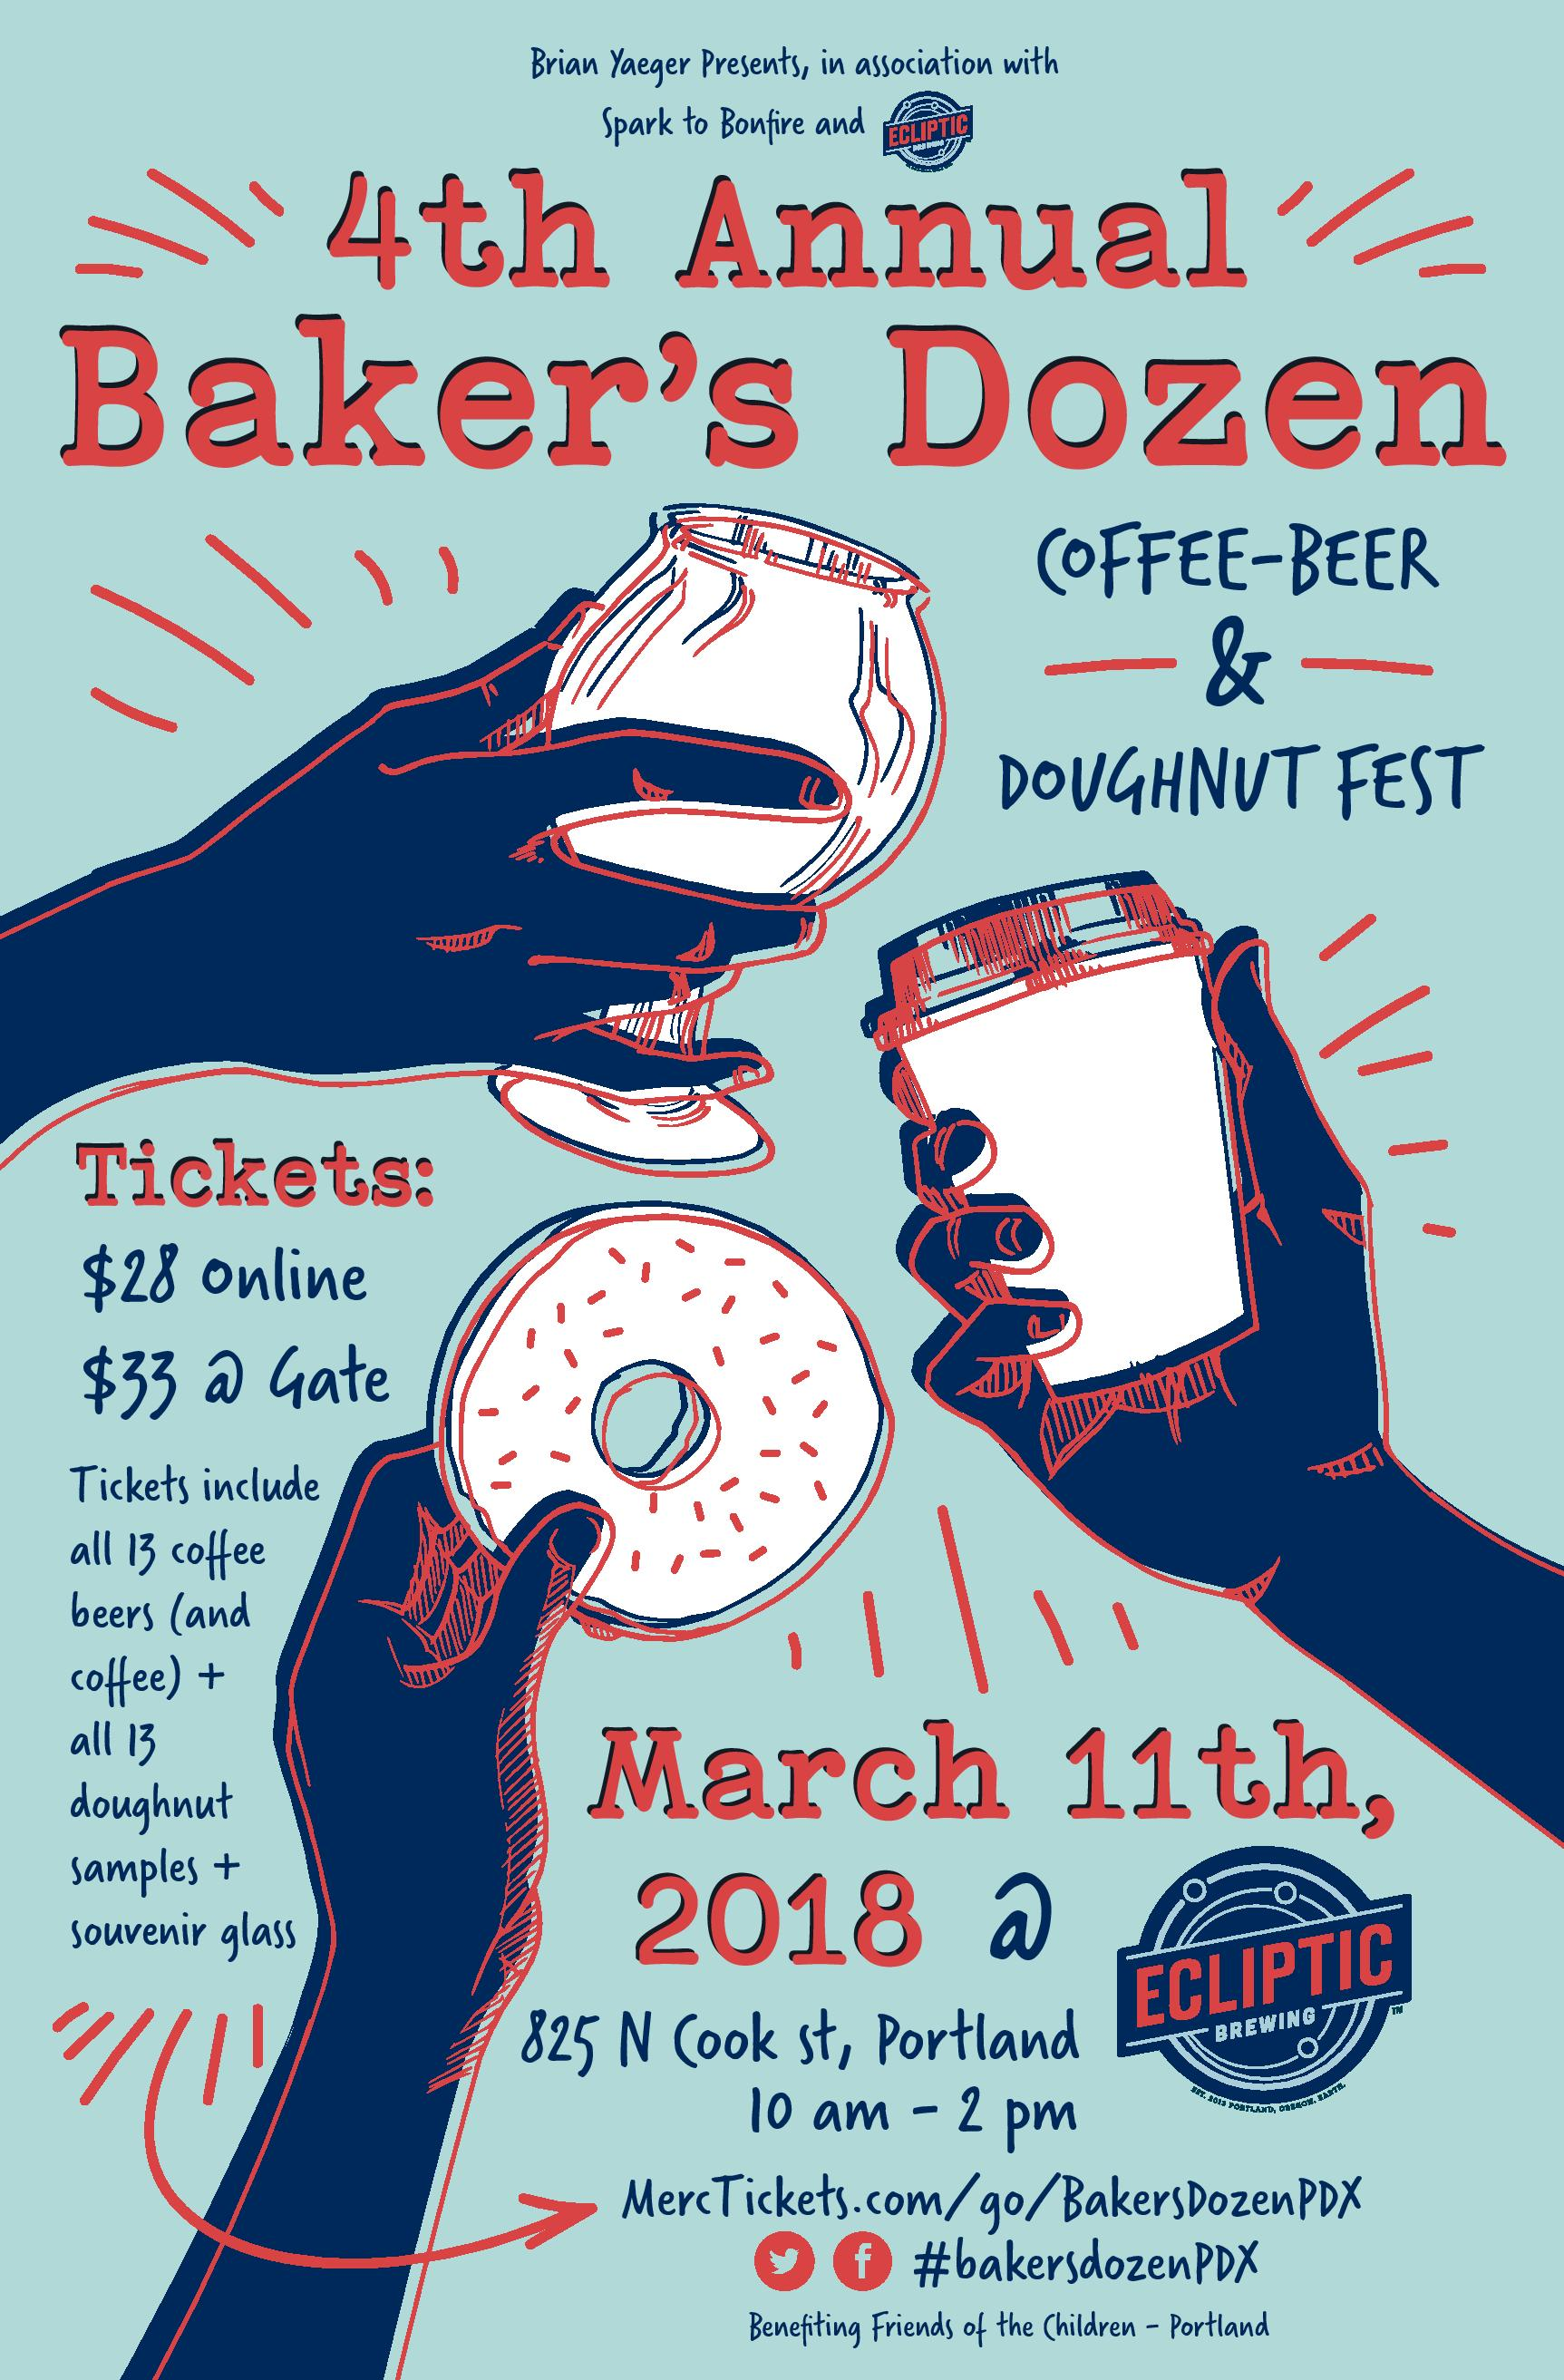 4th Annual Baker's Dozen Poster